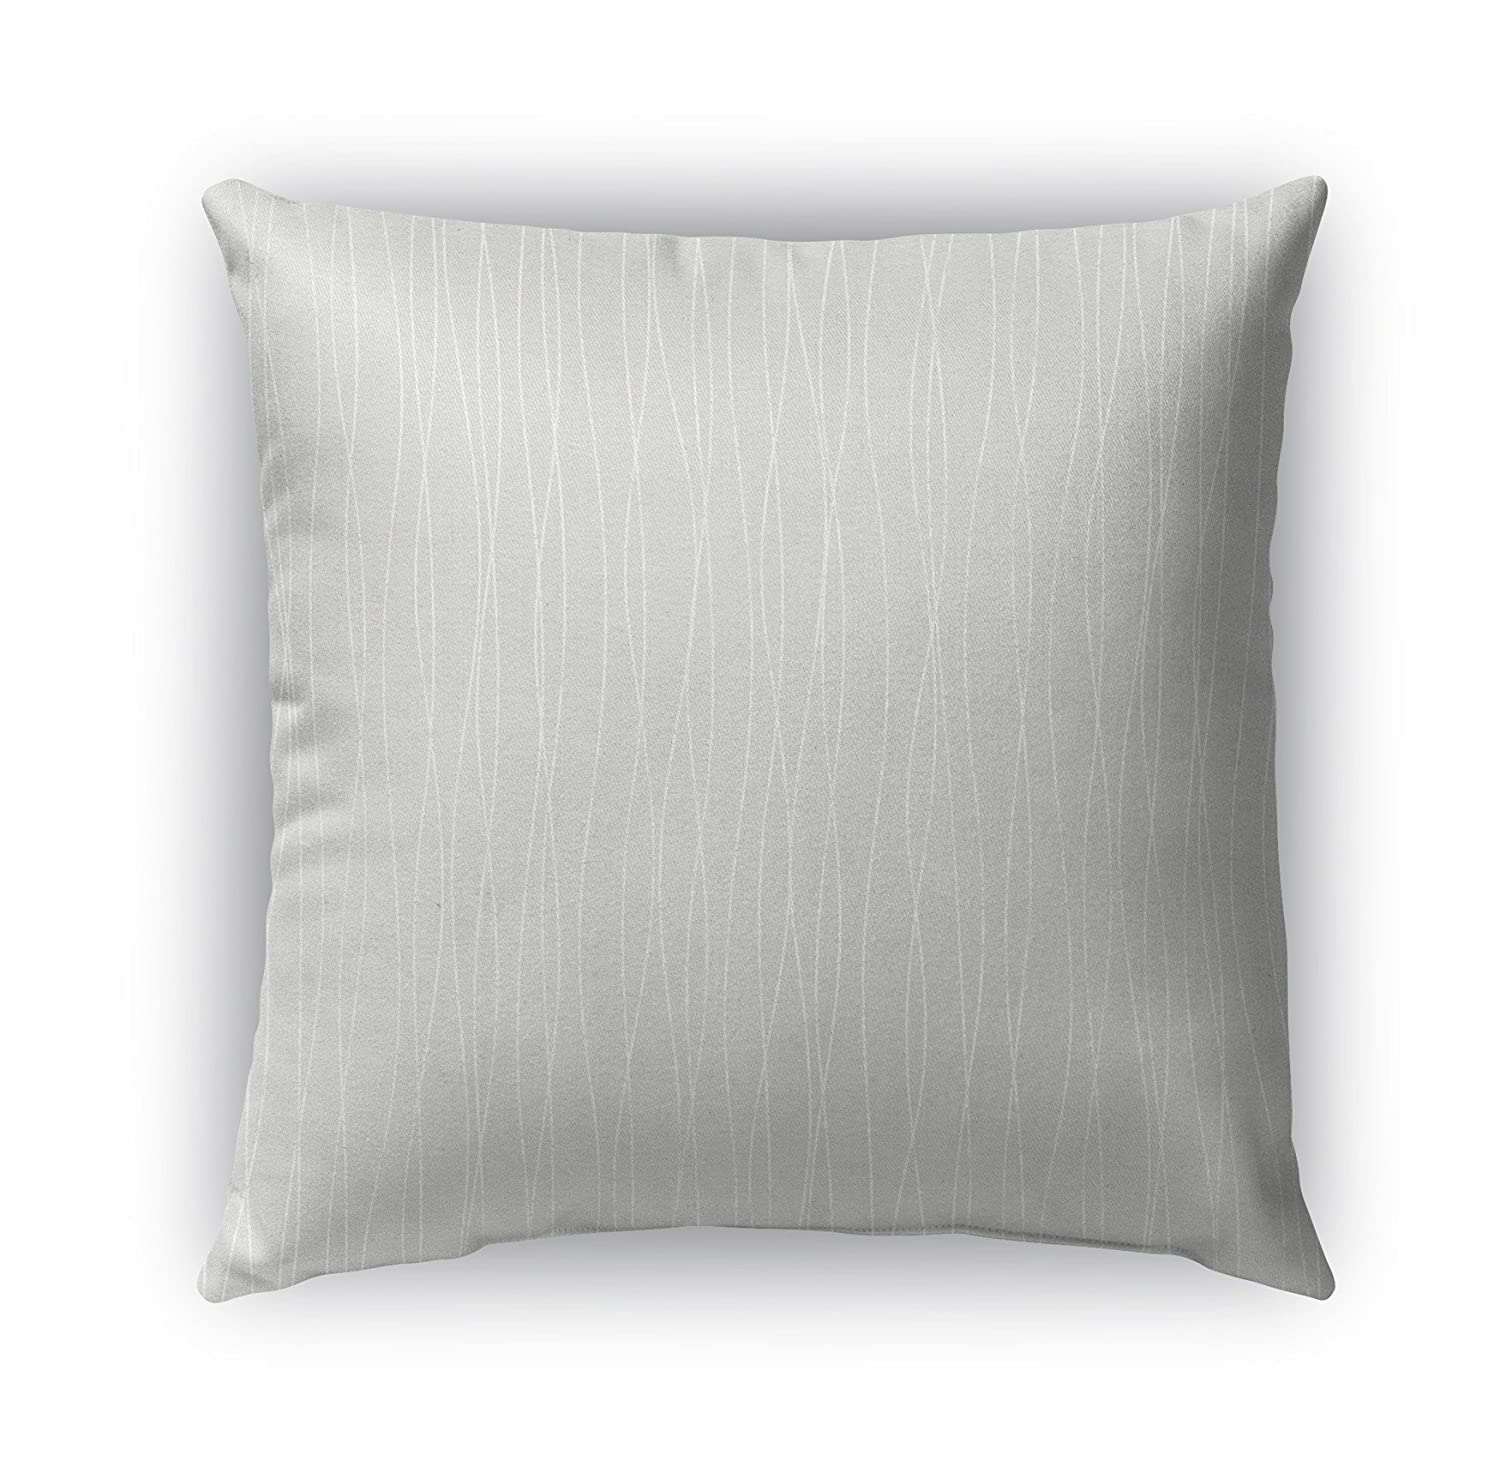 KAVKA Designs Trento Indoor-Outdoor Pillow, TELAVC1487OD18 Grey Size: 18X18X6 - - Encompass Collection